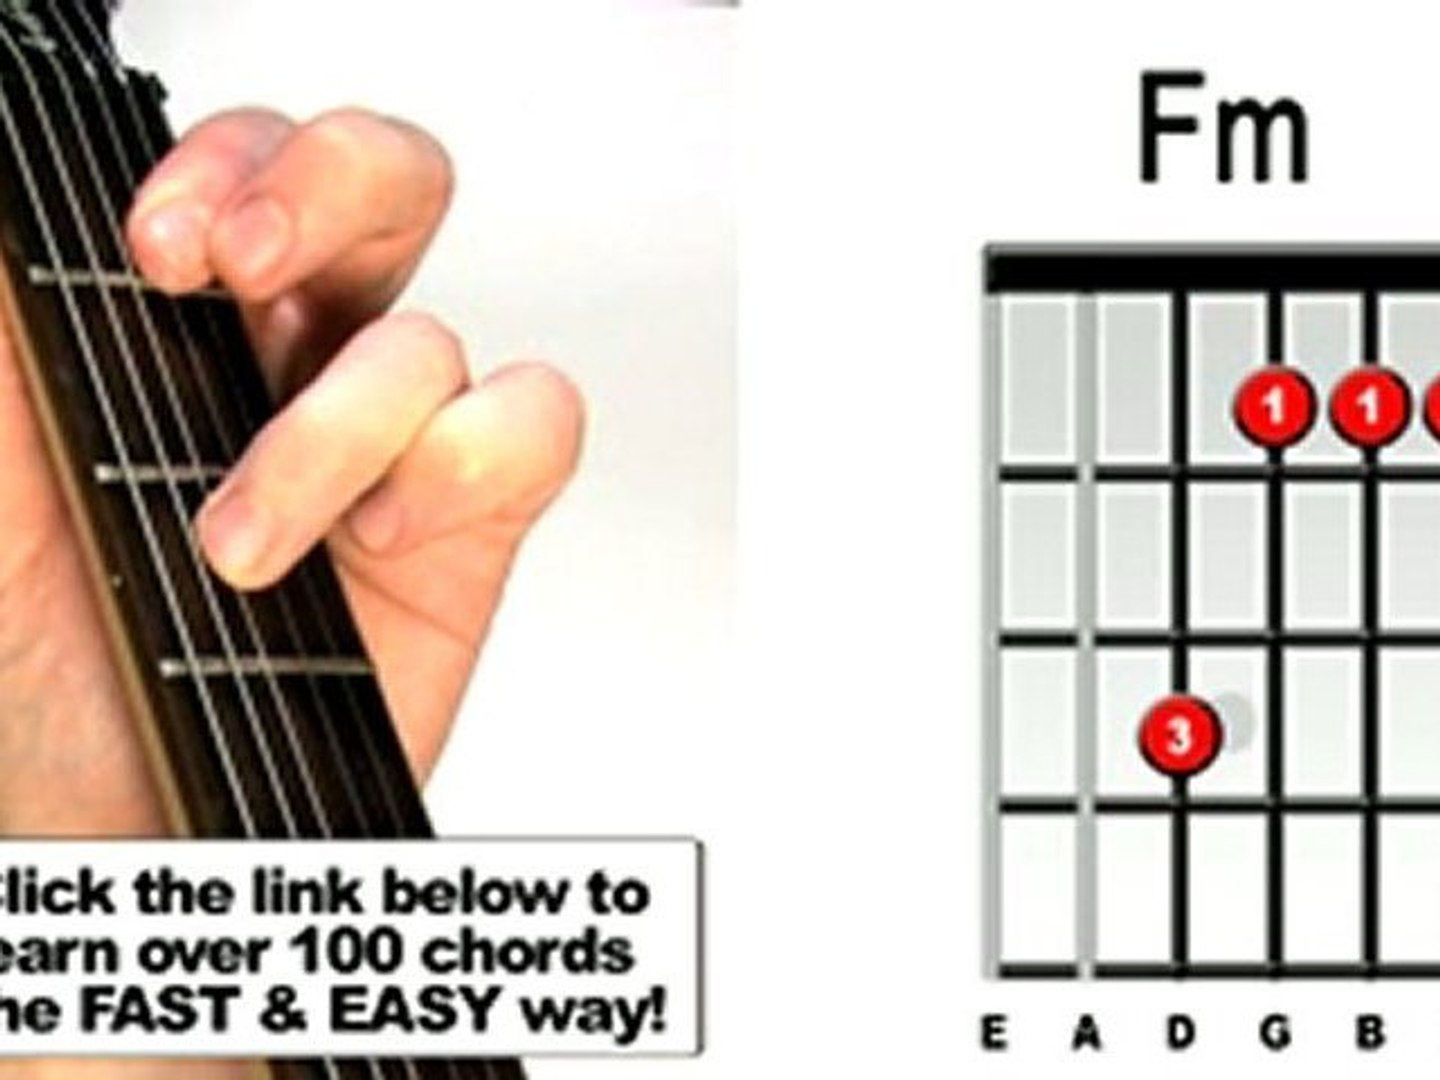 F M Guitar Chord How To Play Fm Guitar Chord Beginners Acoustic Video Dailymotion